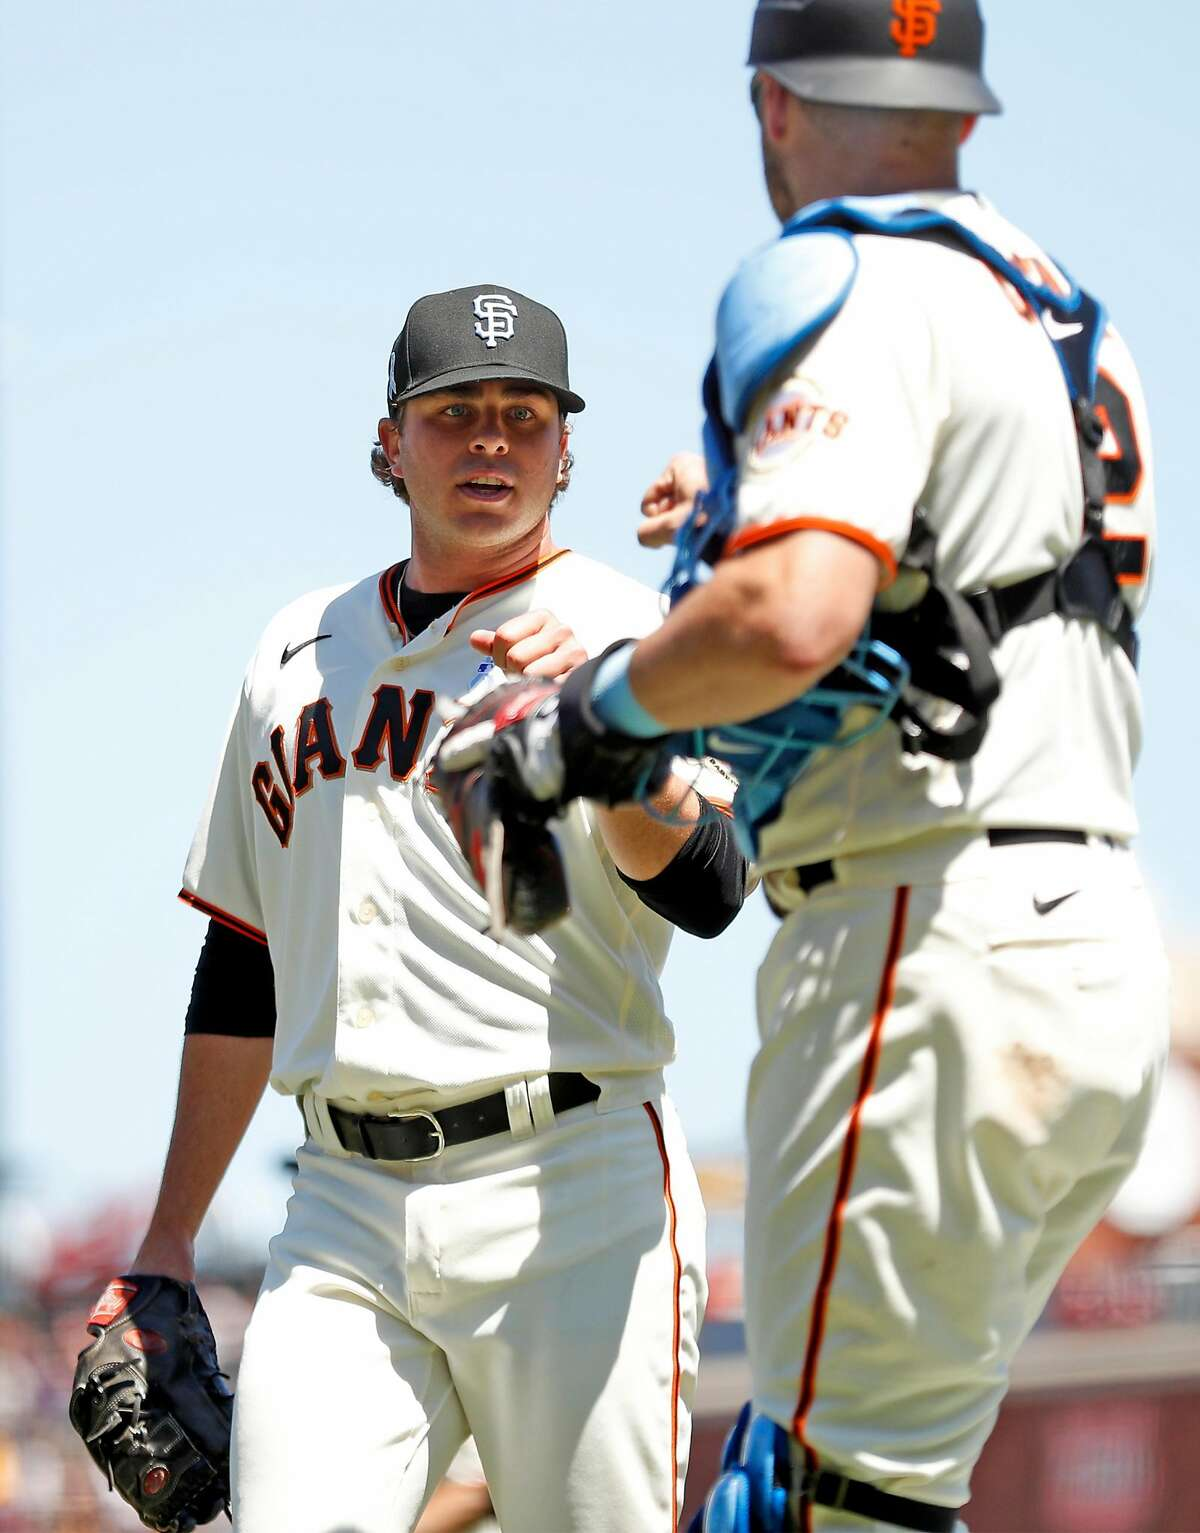 San Francisco Giants' starting pitcher Sammy Long fist bumps catcher Curt Casali after retiring the Philadelphia Phillies in top of 6th inning during MLB game at Oracle Park in San Francisco, Calif., on Sunday, June 20, 2021.